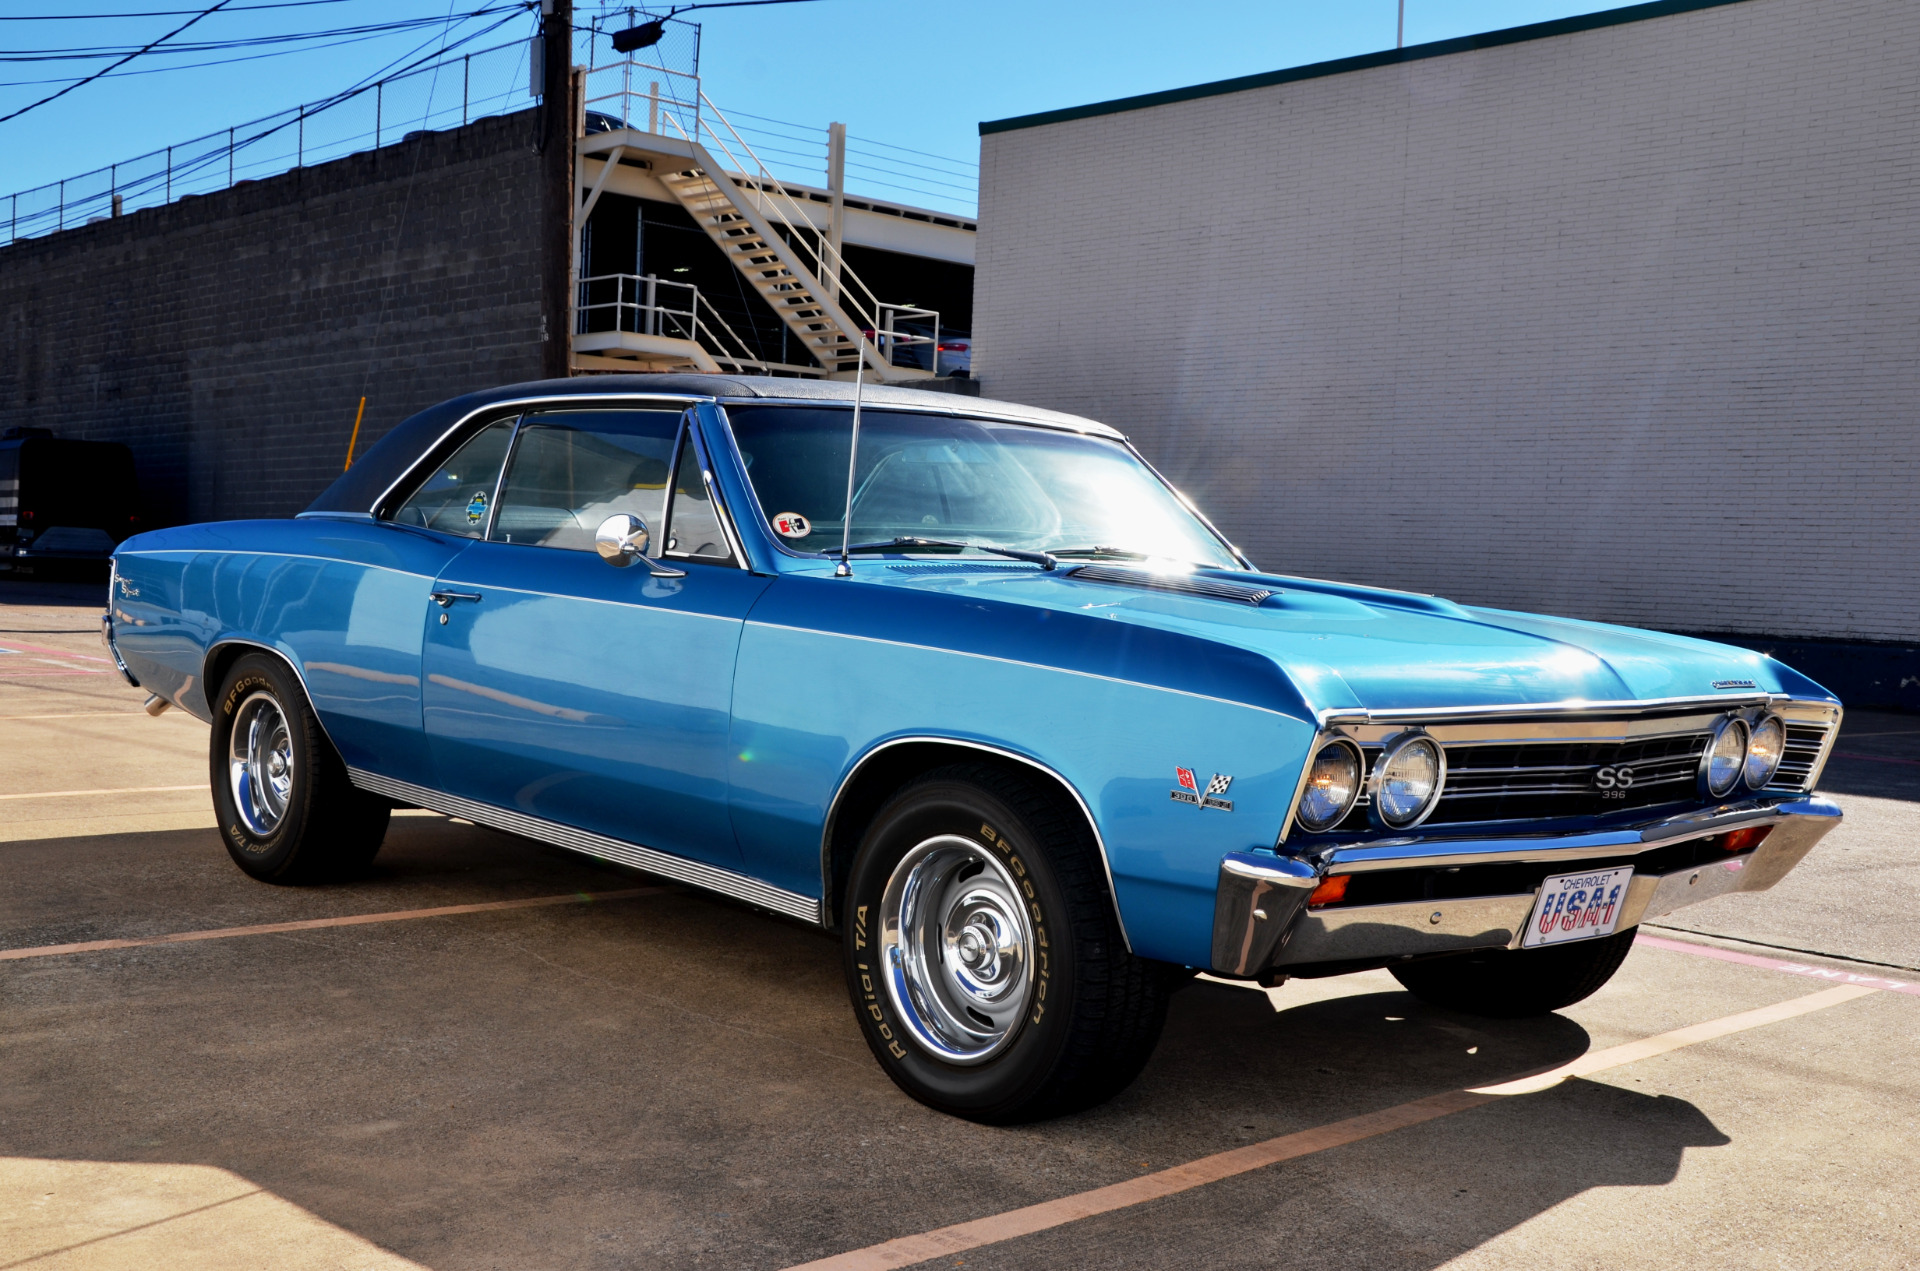 Free Carfax Check >> 1967 CHEVROLET CHEVELLE SUPER SPORT Stock # 67CHEVE for